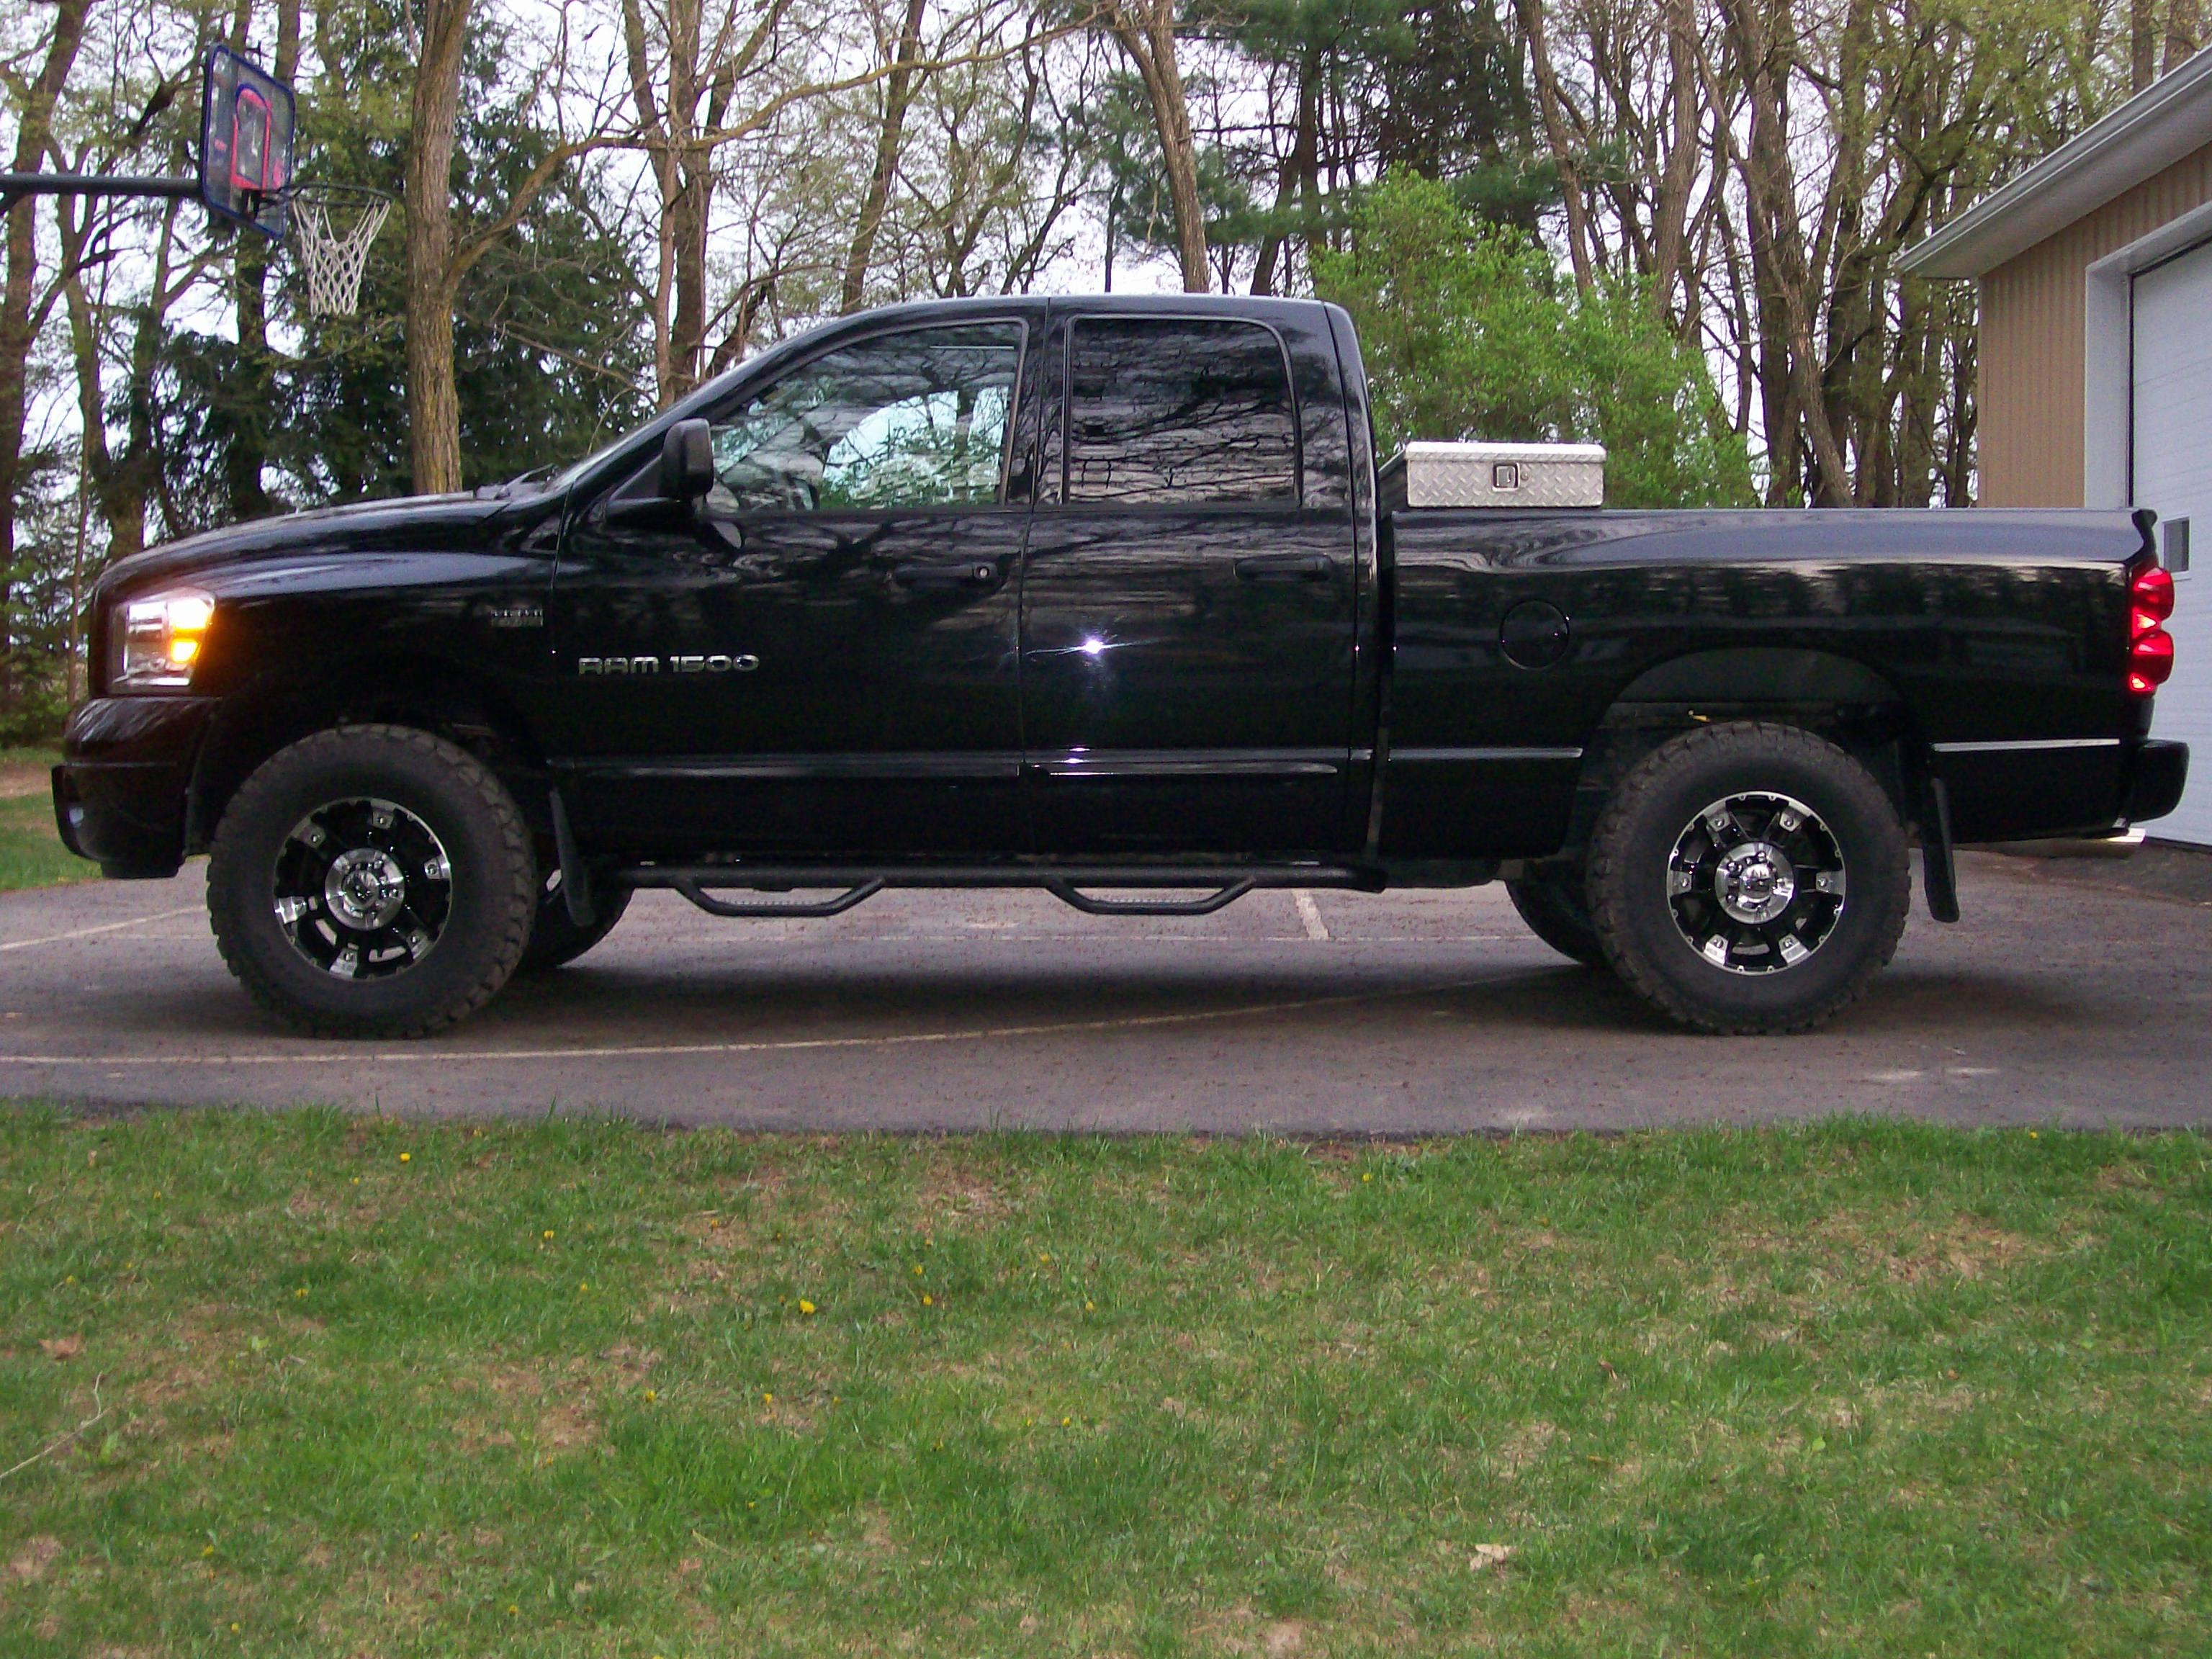 tks07ram 2007 dodge ram 1500 crew cab specs photos modification info at cardomain. Black Bedroom Furniture Sets. Home Design Ideas